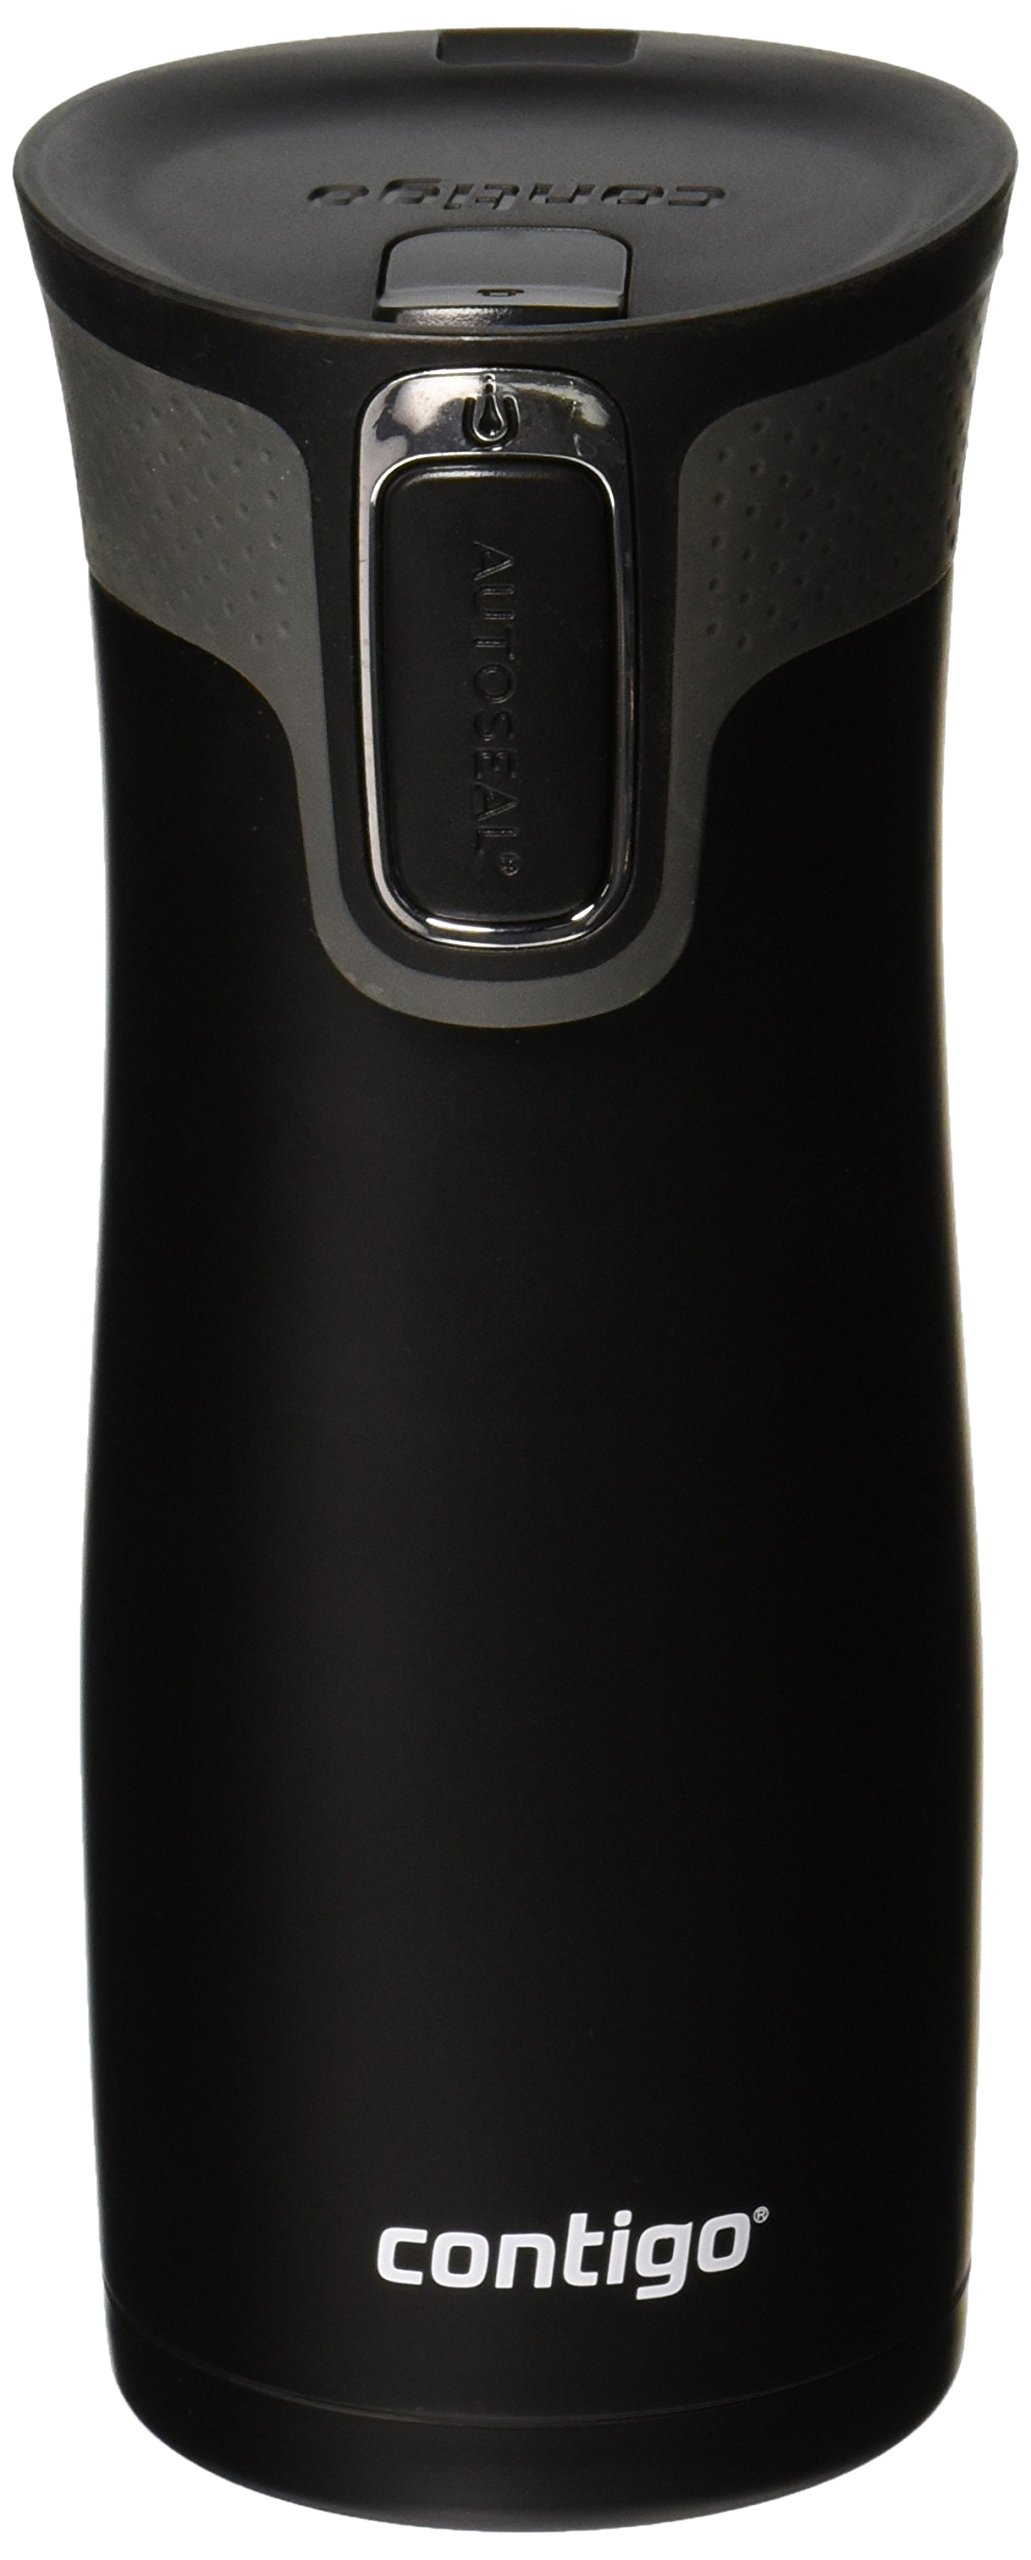 Contigo Autoseal West loop Stainless Steel Travel Mug with Easy-Clean Lid, 16 ounce Matte Black